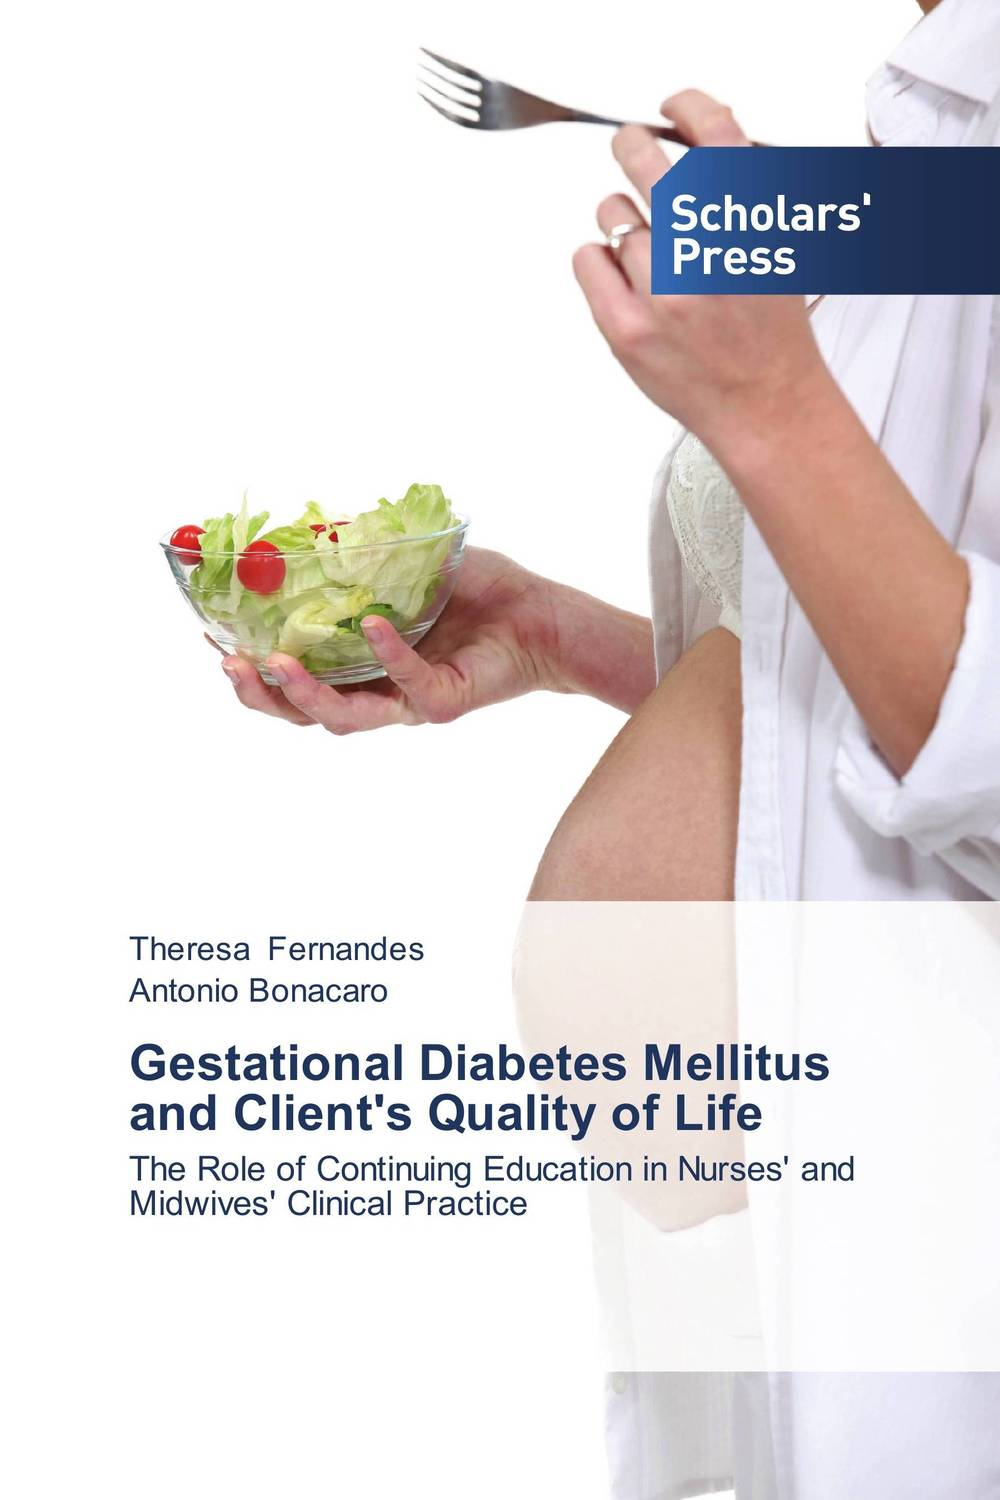 Gestational Diabetes Mellitus and Client's Quality of Life kamal modh and dhaval chaudhary drug prescribing patterns for diabetes mellitus